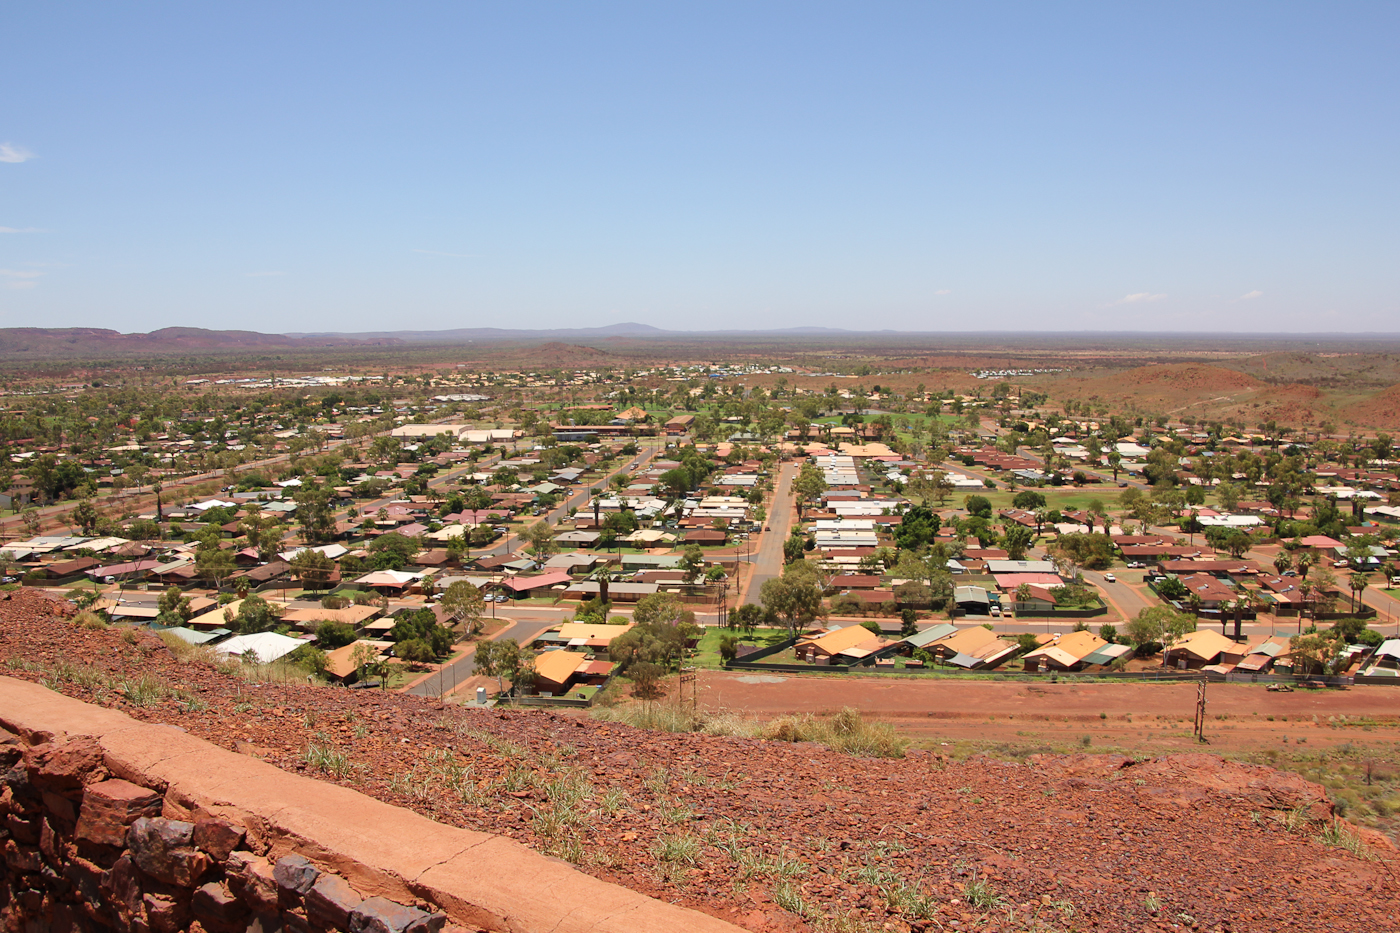 Newman, a mining town in the middle of nowhere in Western Australia